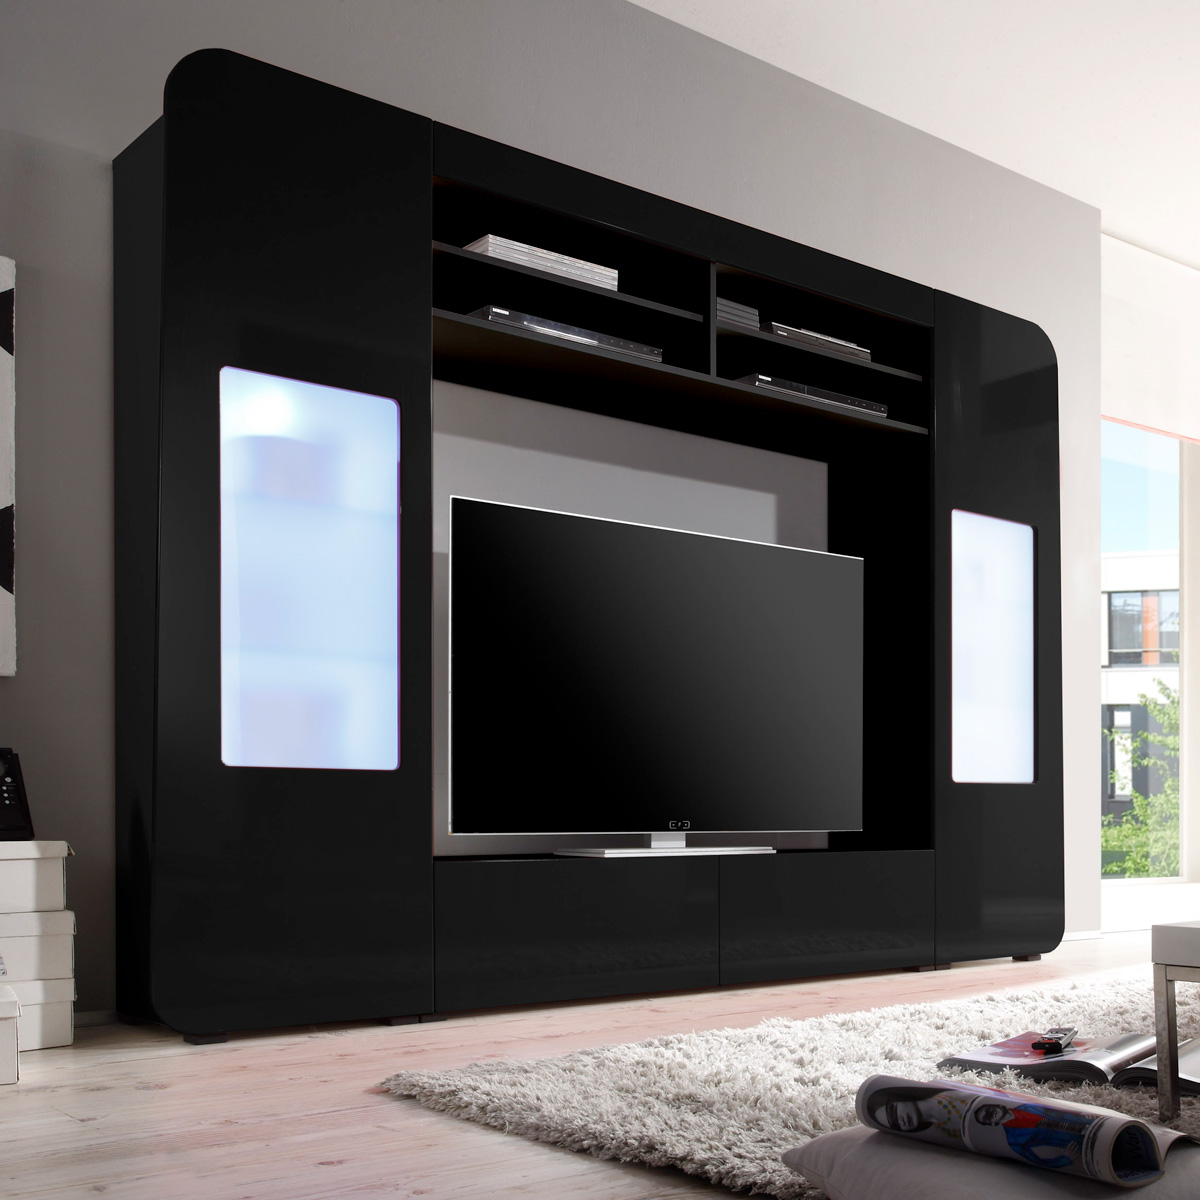 mediawand kino 1 wohnwand anbauwand mediacenter schwarz hochglanz mit led ebay. Black Bedroom Furniture Sets. Home Design Ideas